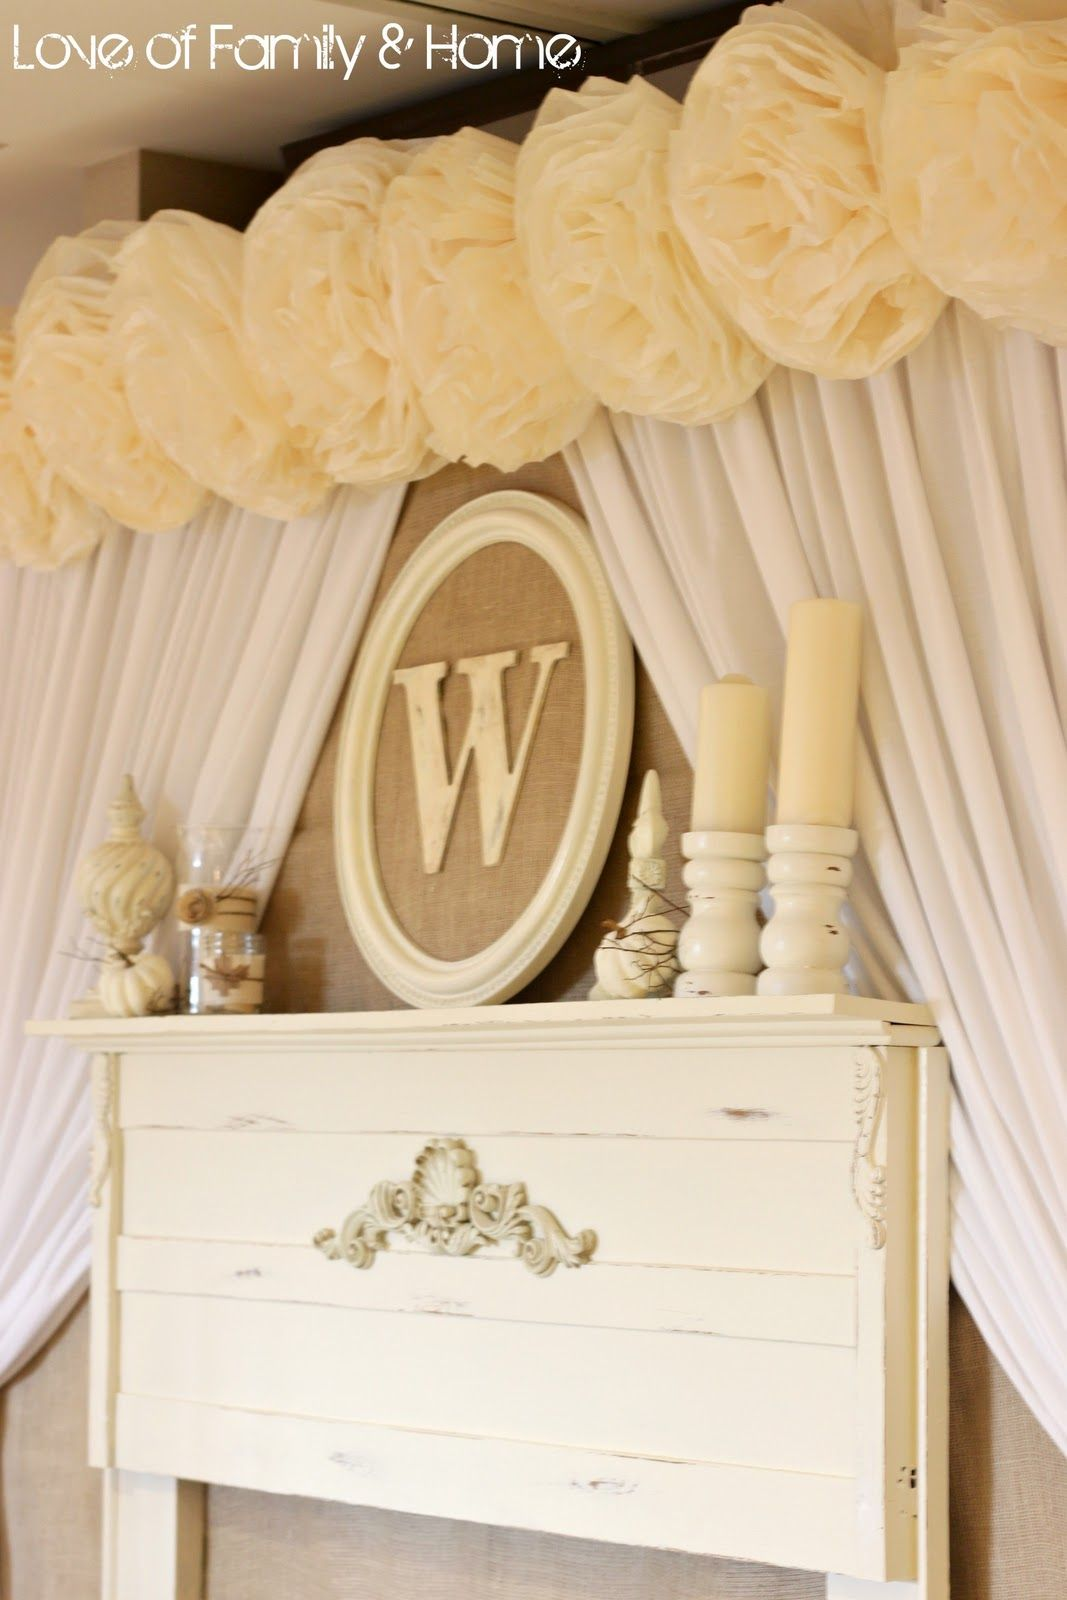 curtain backdrop with monogram | The framed monogram was previous ...